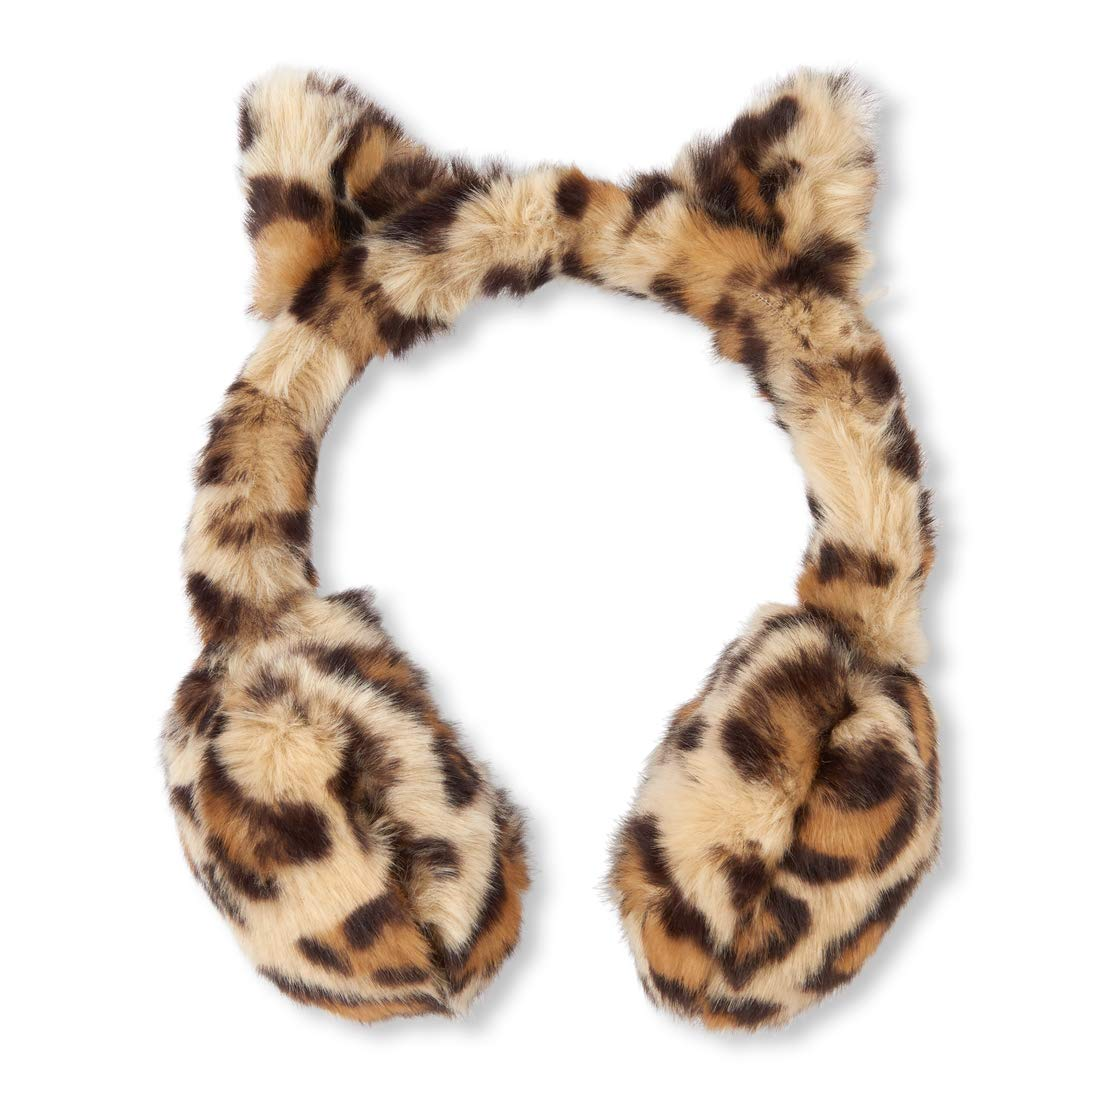 The Children's Place Big Girls' Earmuff Leopard NO_Size The Children' s Place 2115298